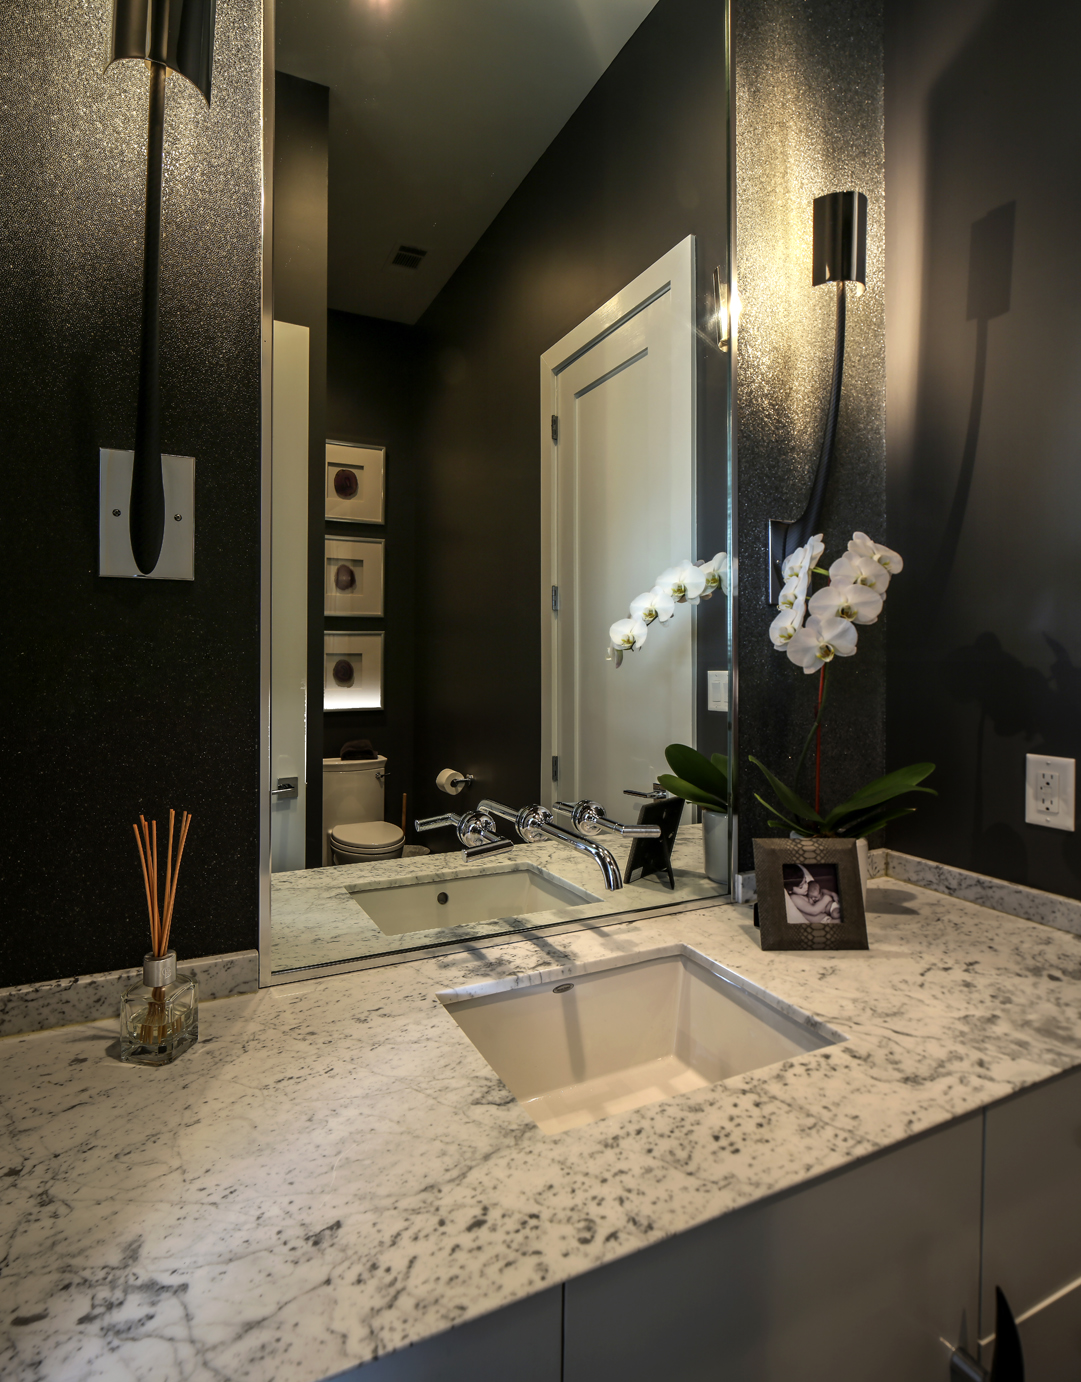 Out Of The Box Modernist Architecture Makes A Home Shine In One Way Mirror Bathroom